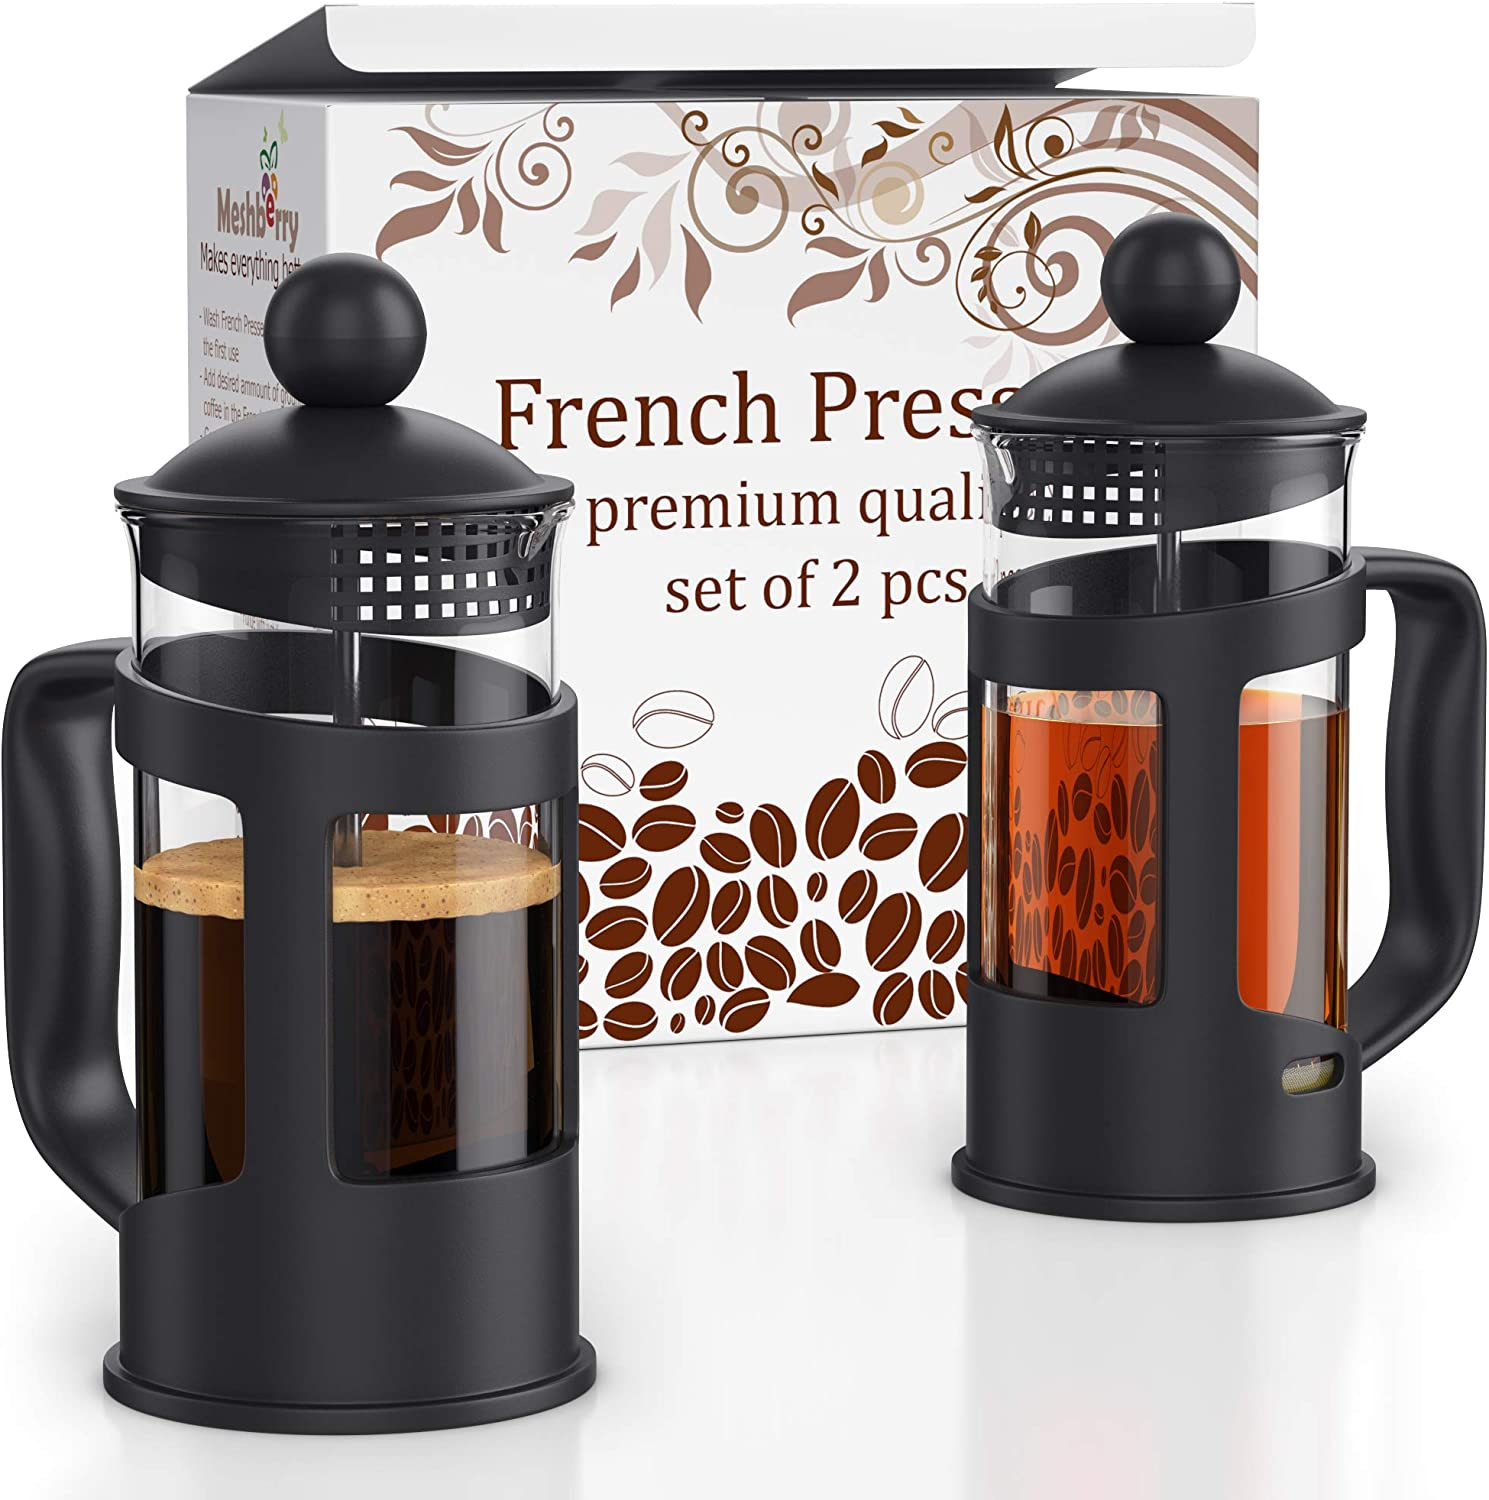 French Press Coffee Maker - online shopping Set Save money of Gift 2 12oz pcs Box 350m in